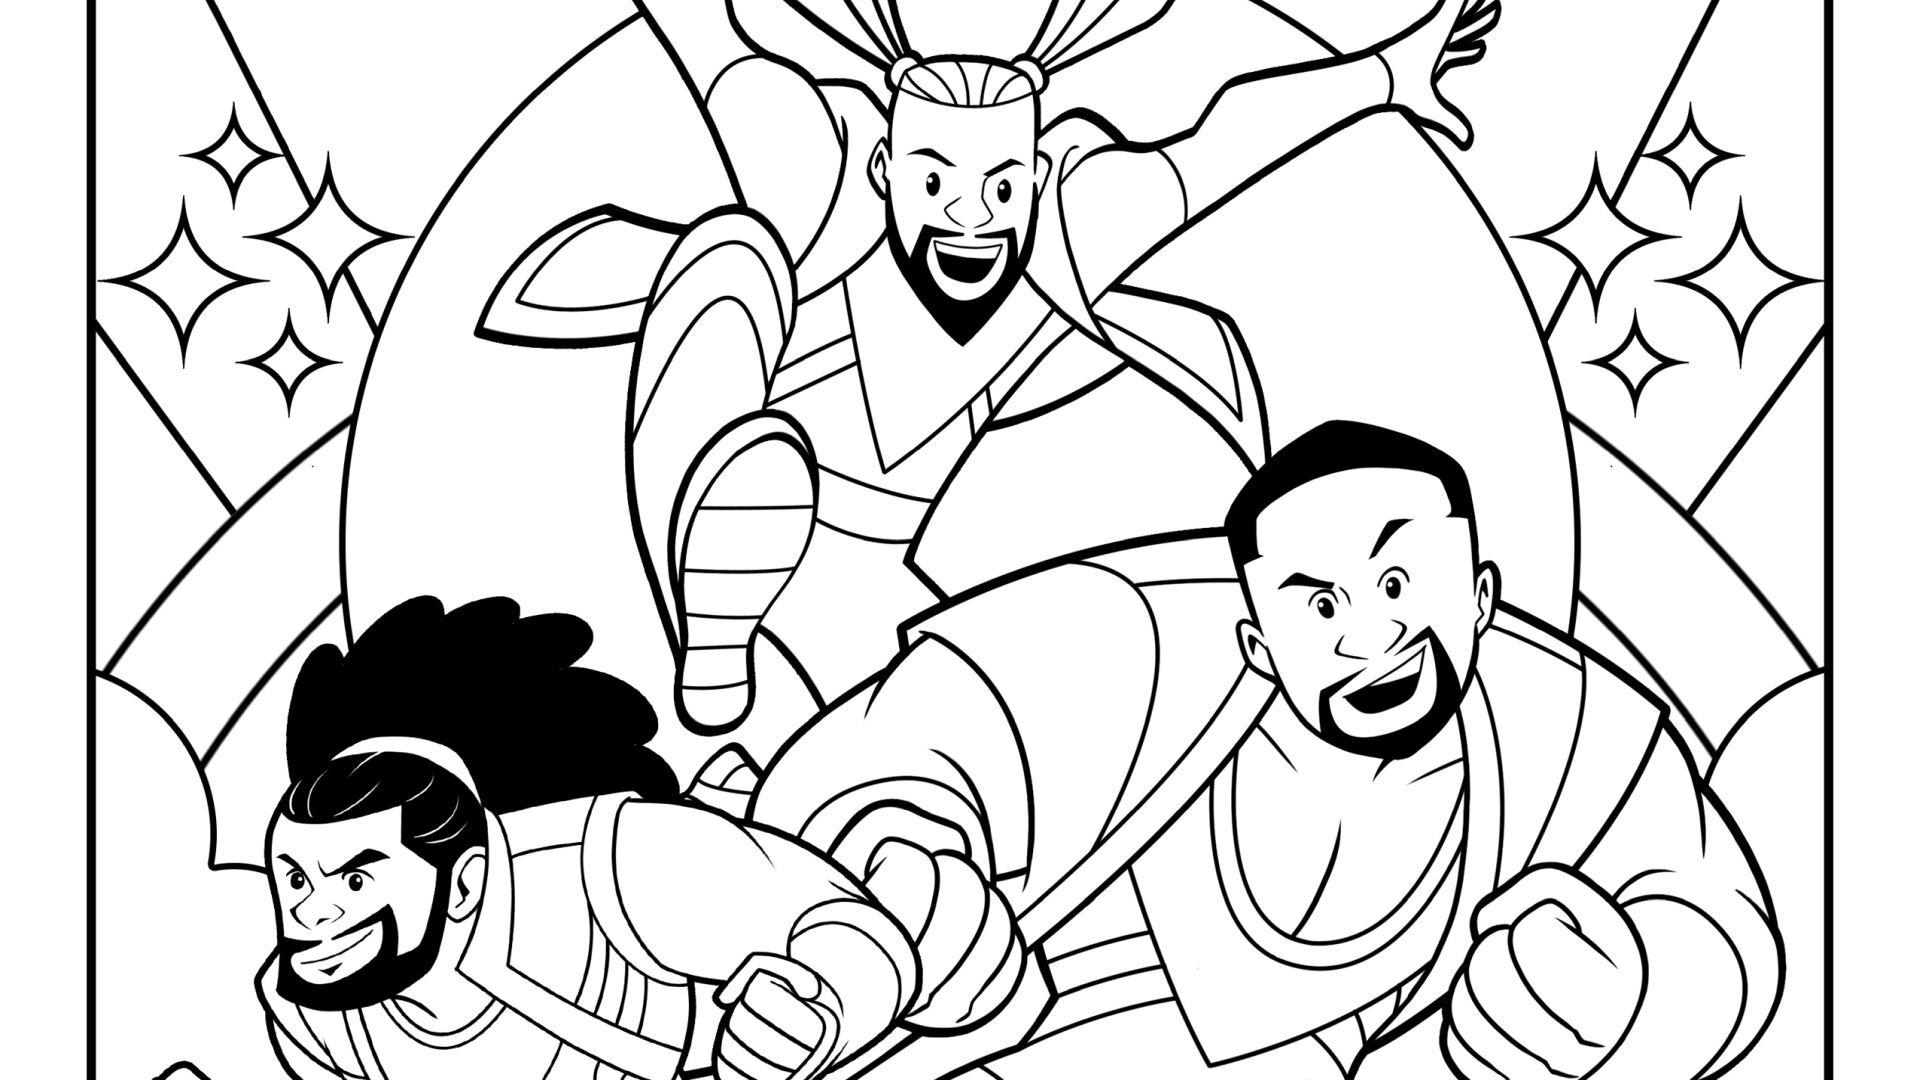 - Get Your WWE Fix With These Free The New Day Coloring Pages — GeekTyrant